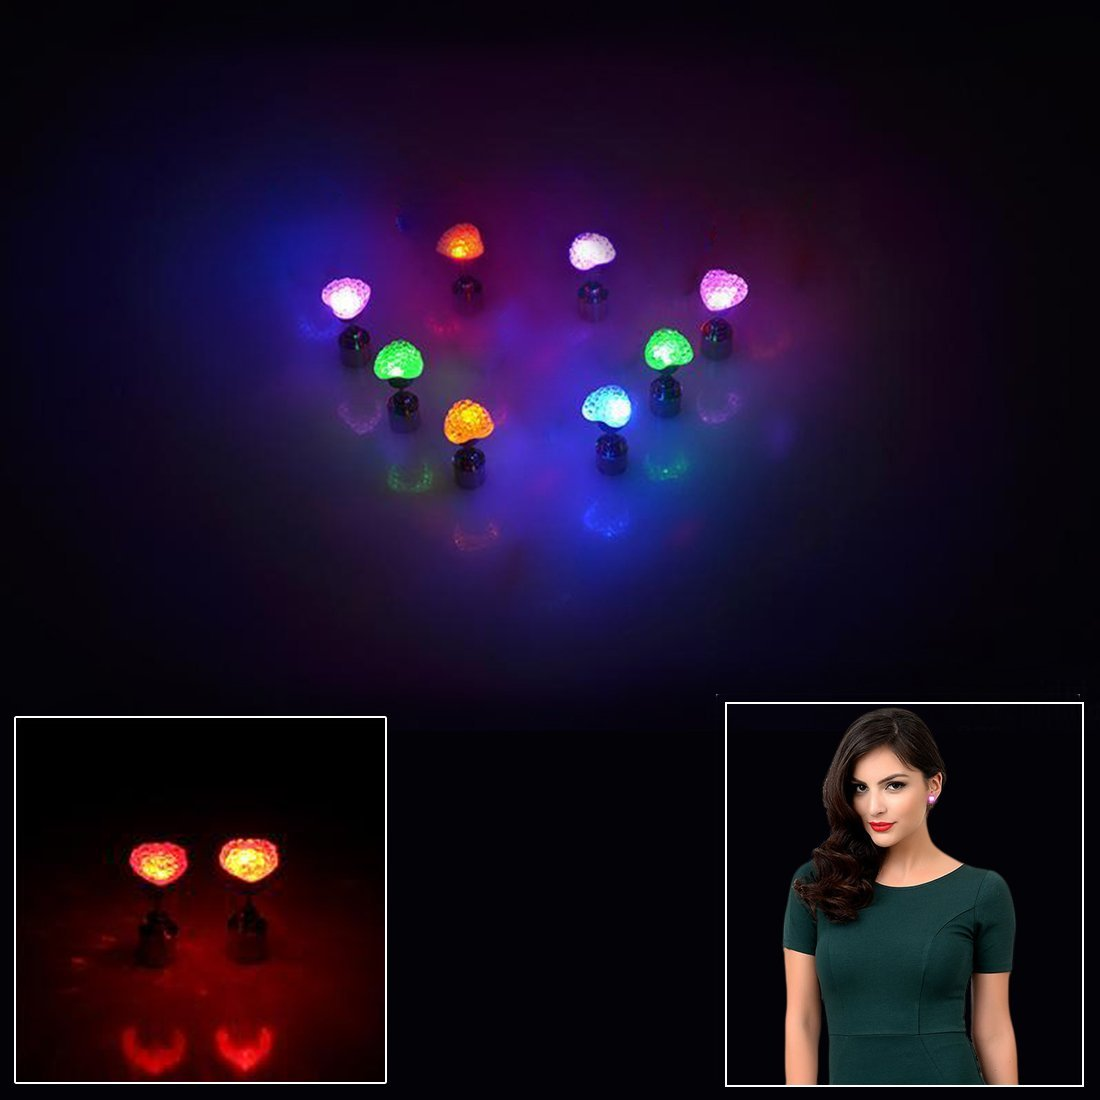 Valentine Earrings | Glowing Heart Shaped Led Earrings 4 pairs/ 4 colors | Dazzling Toys